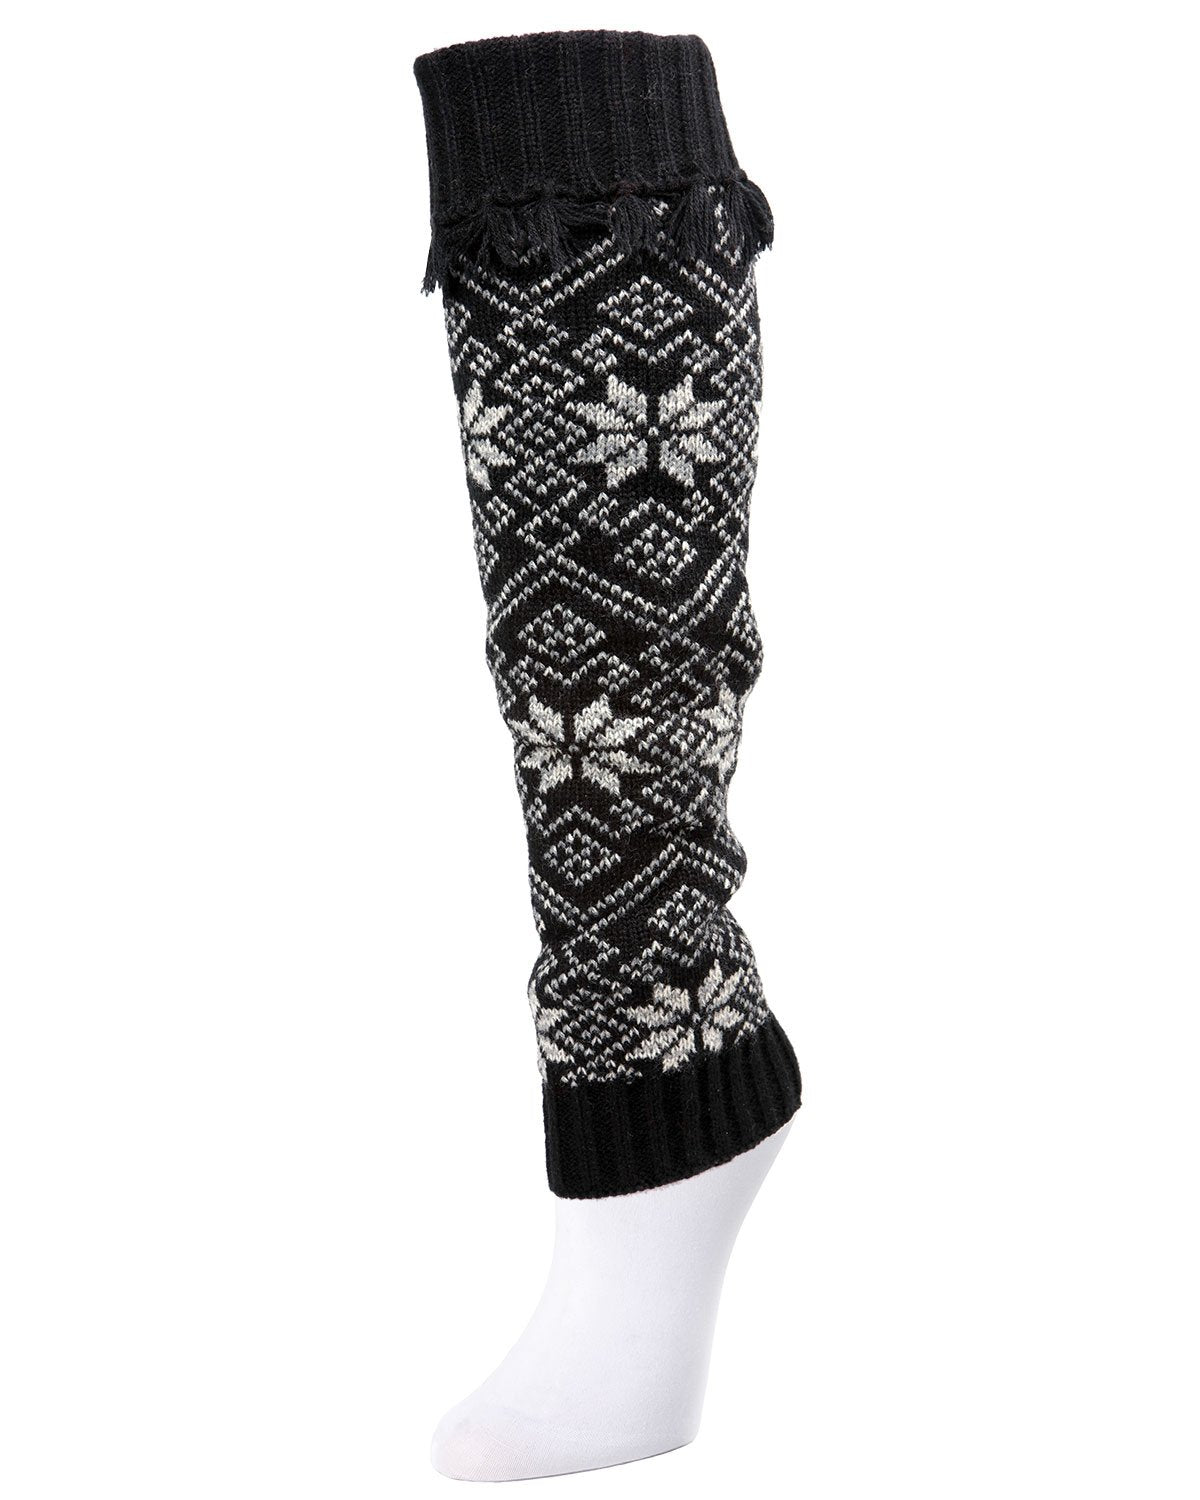 Alpine Fair Isle Selburose Fringed Leg Warmer